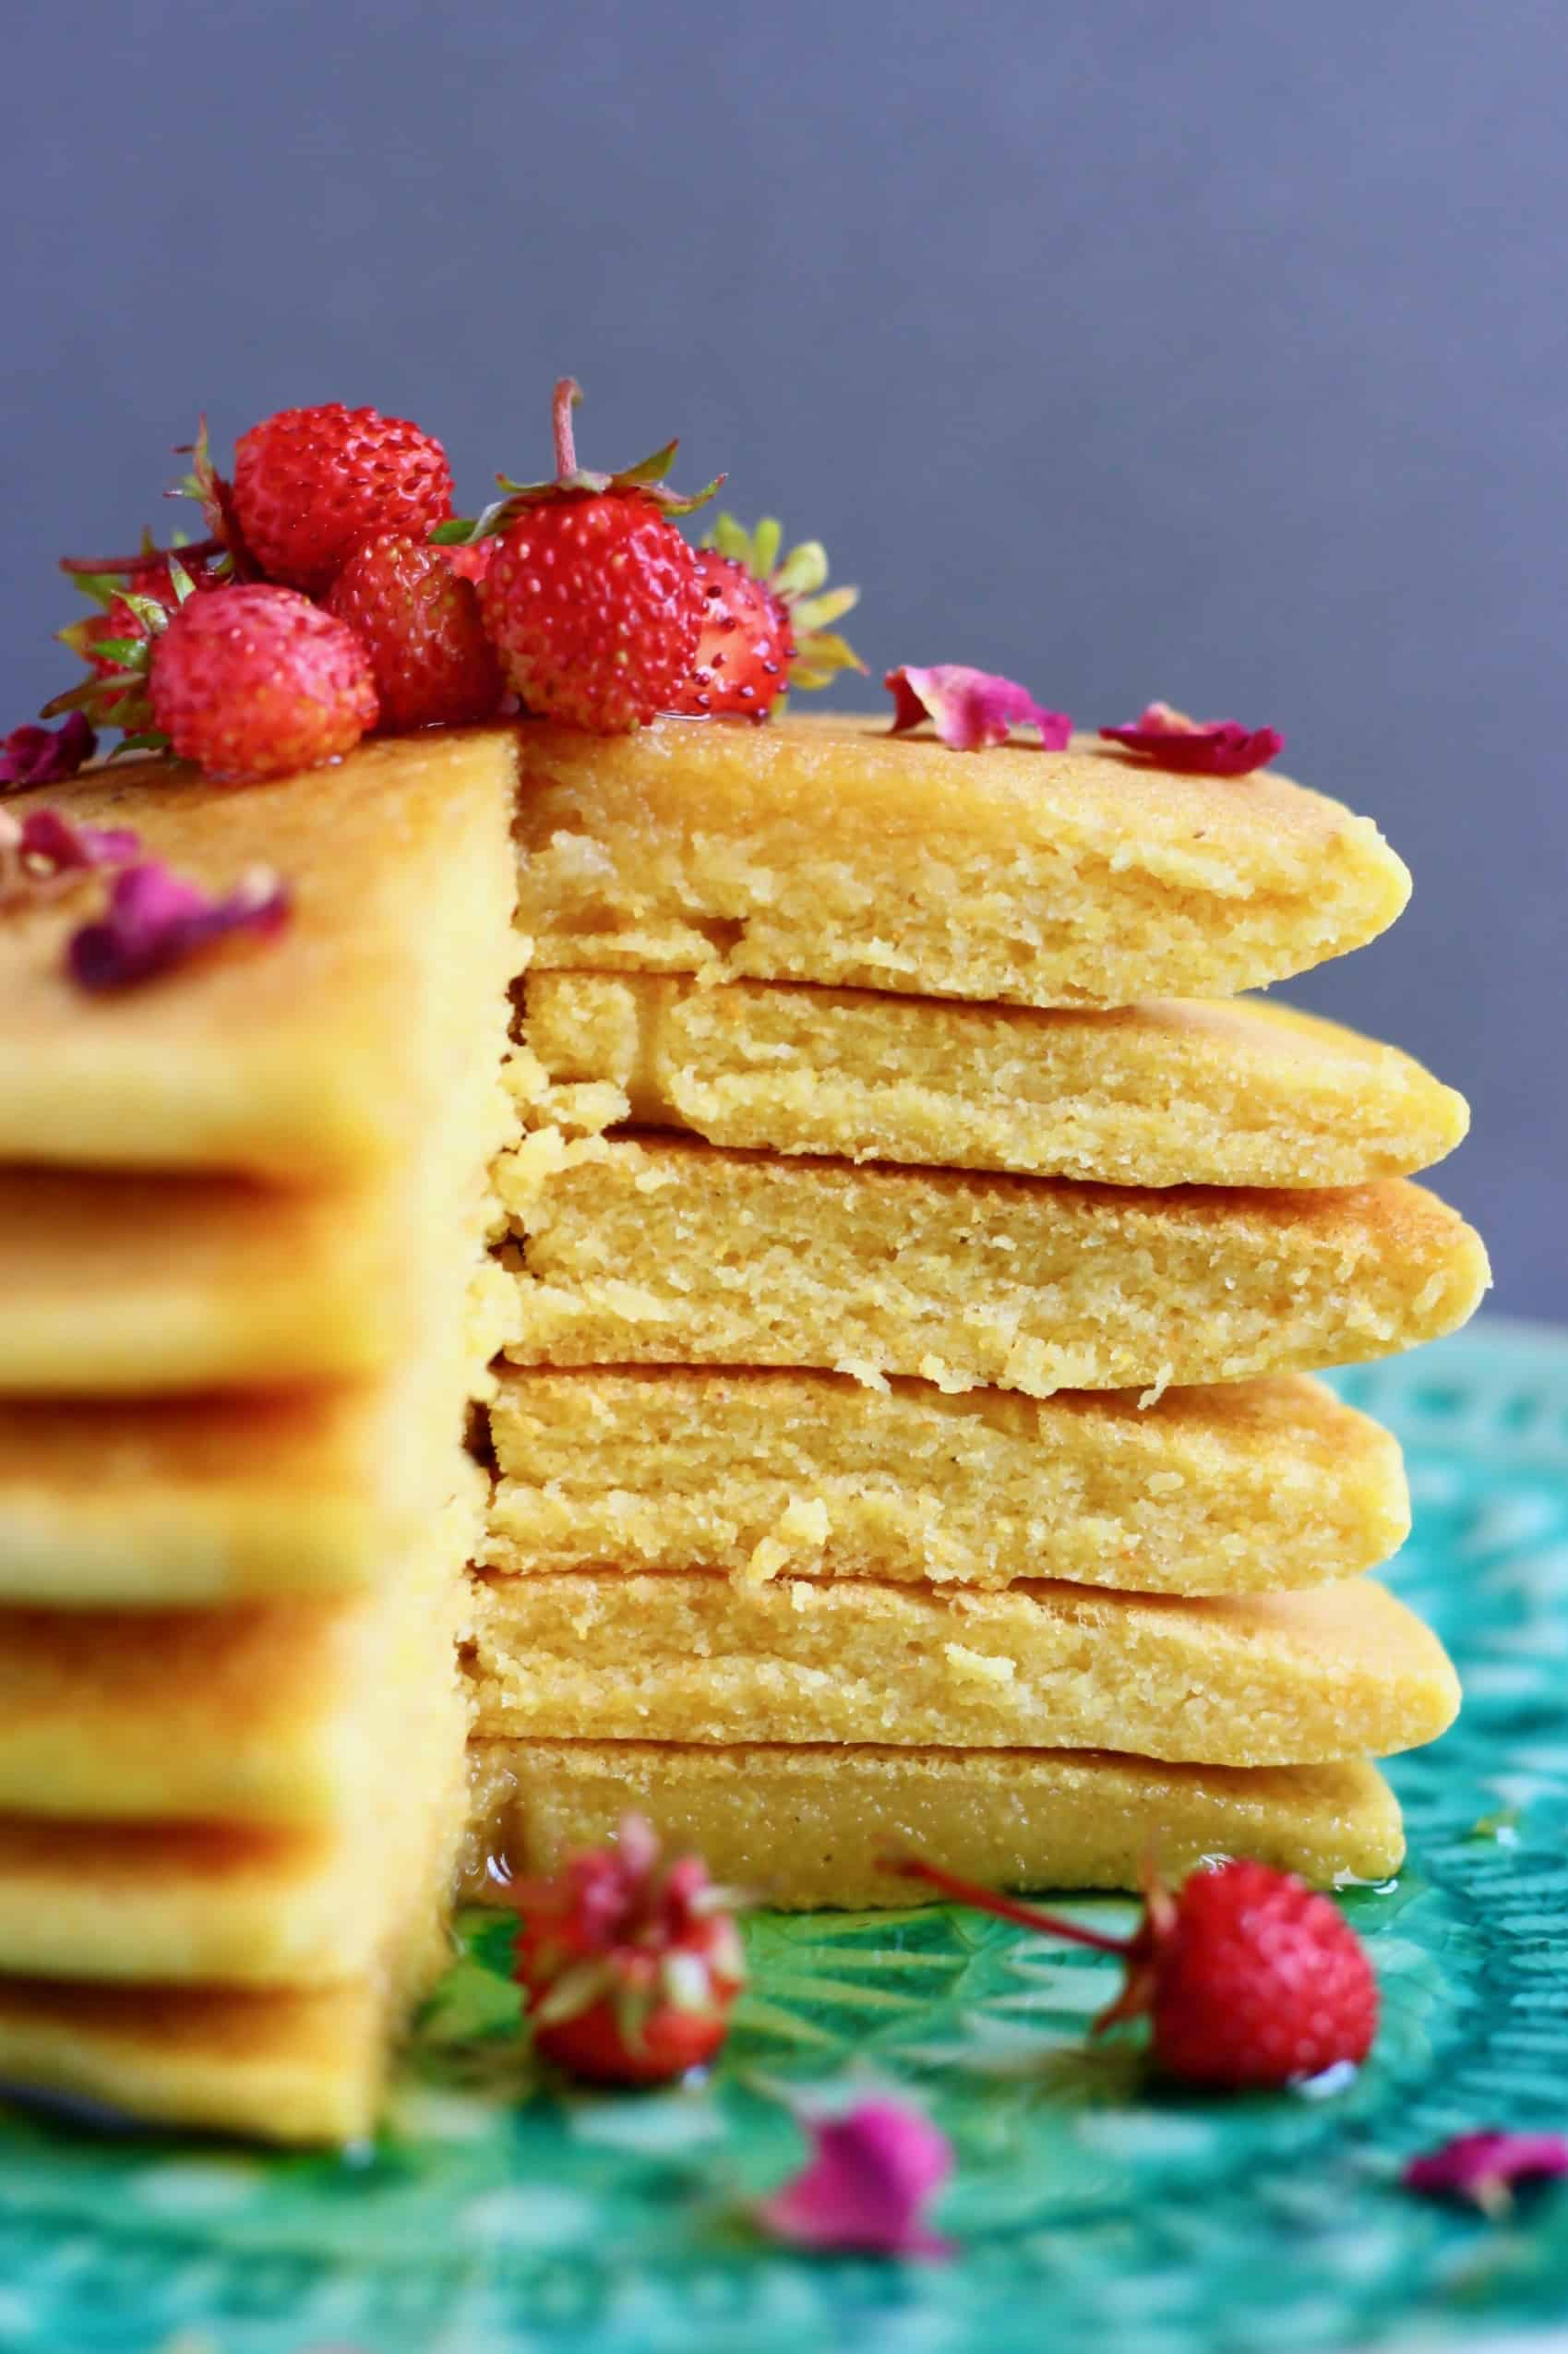 A stack of gluten-free vegan cornmeal pancakes with a slice cut out of them topped with rose petals and small strawberries on a plate